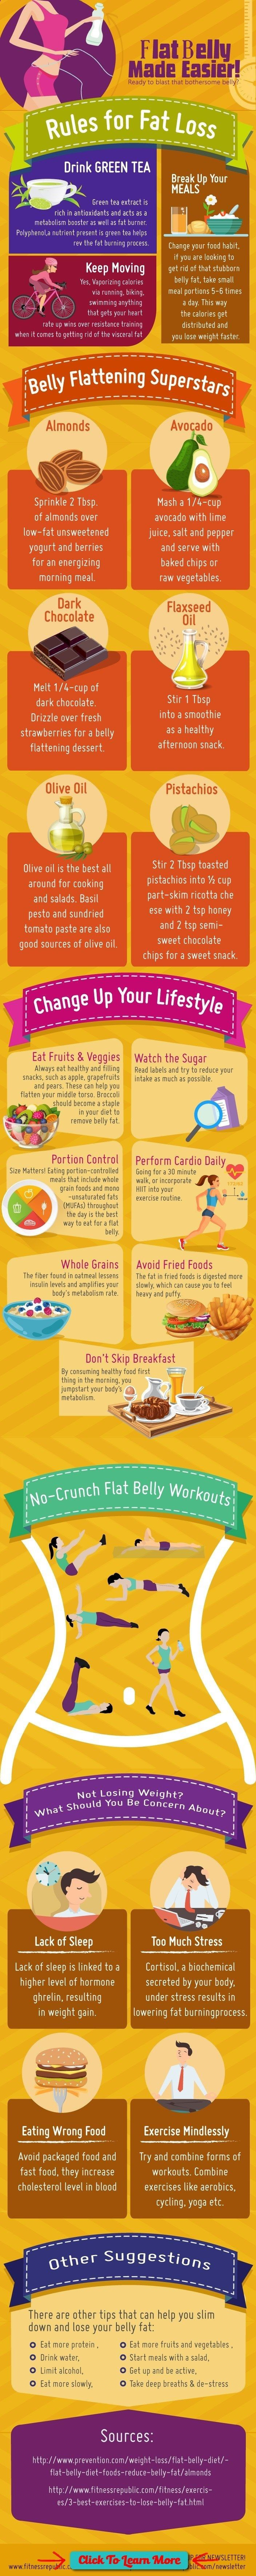 Food for Flat Belly - #FastestWayToLoseWeight by EATING, Click to learn more, Gaining a flat belly can be a real struggle. Often, the difficulty is because of the belief we put in misconceptions. Heres how to get a flat belly. , #HealthyRecipes, #FitnessRecipes, #BurnFatRecipes, #WeightLossRecipes, #WeightLossDiets 36-Year Old Husband Uses One Simple Trick to Improve His Health